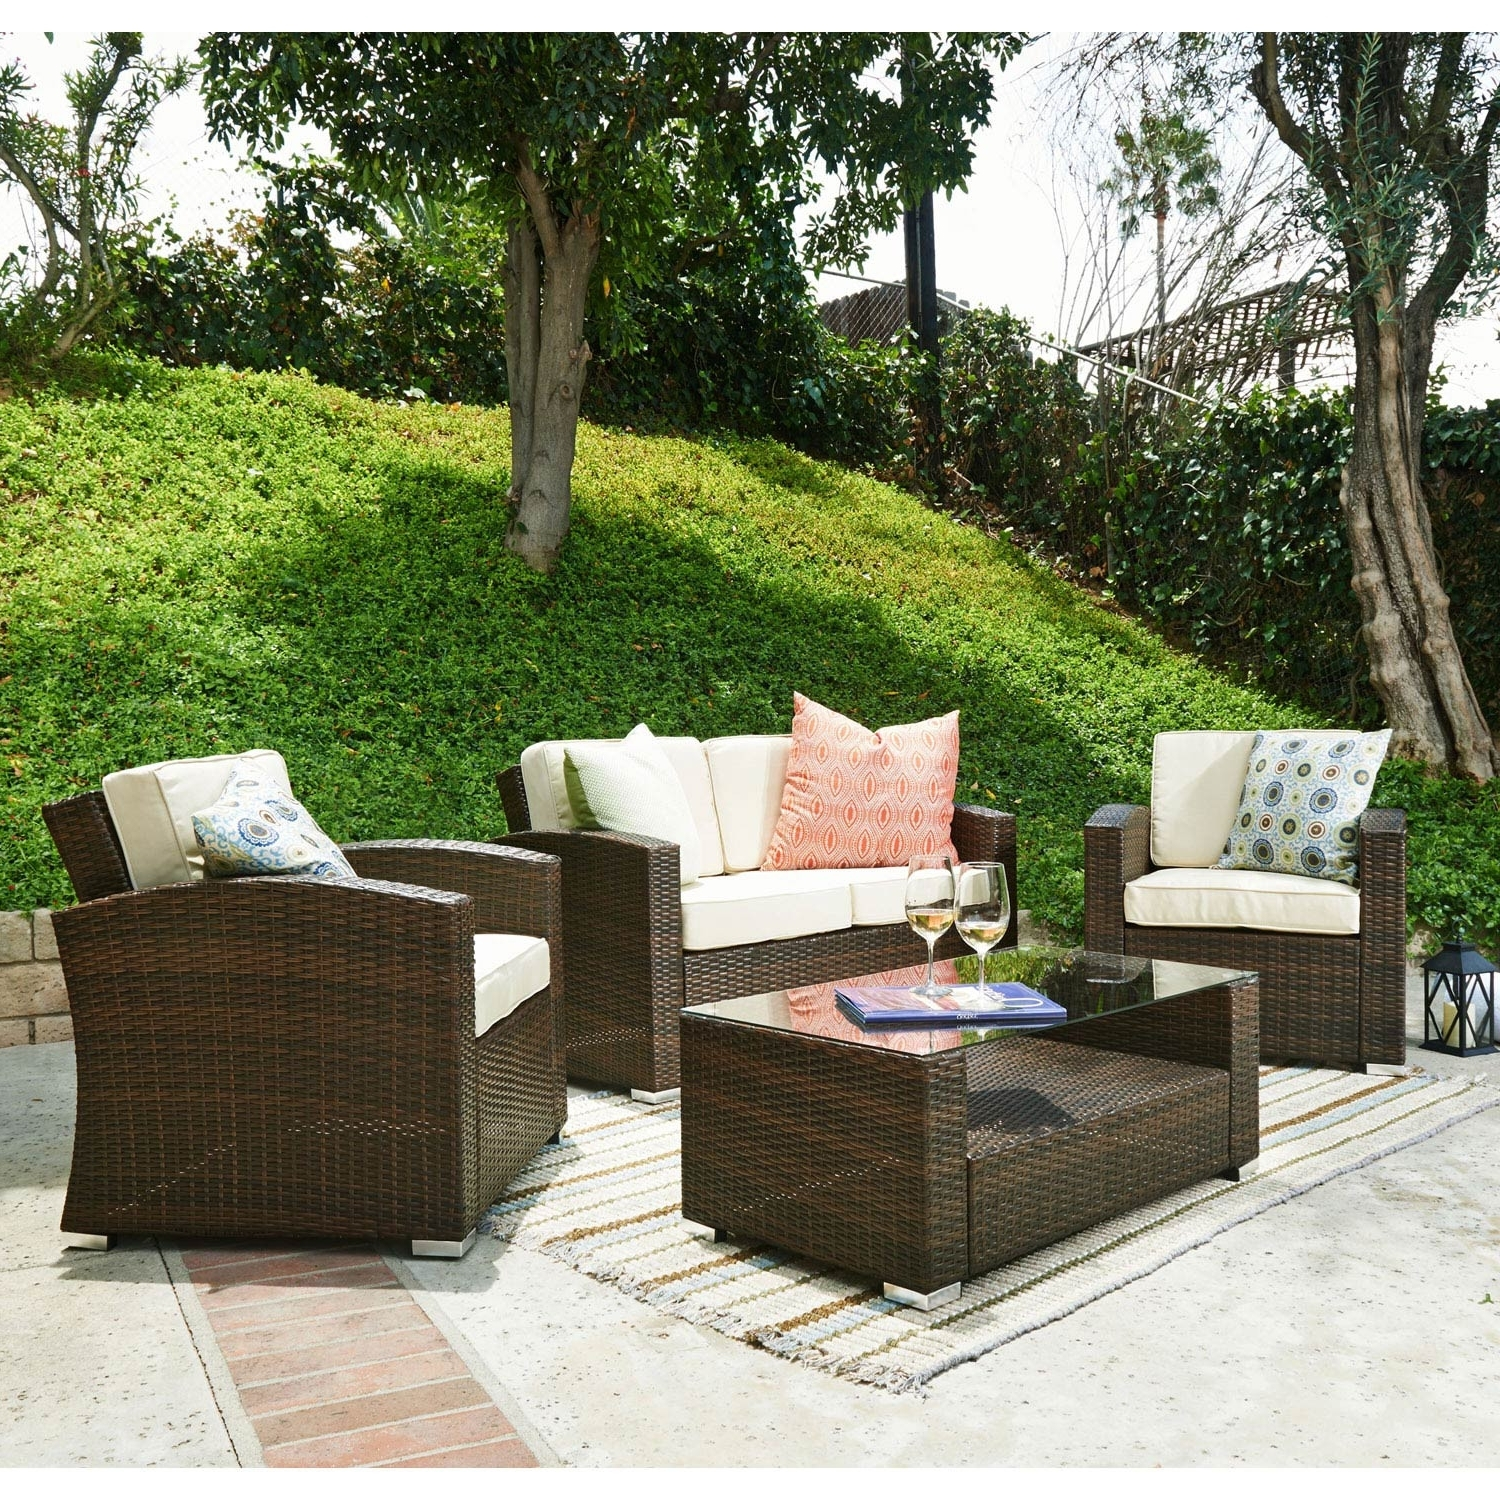 Trendy Outdoor Patio Furniture Conversation Sets Inside 30 Amazing Patio Furniture Conversation Set Ideas (View 19 of 20)